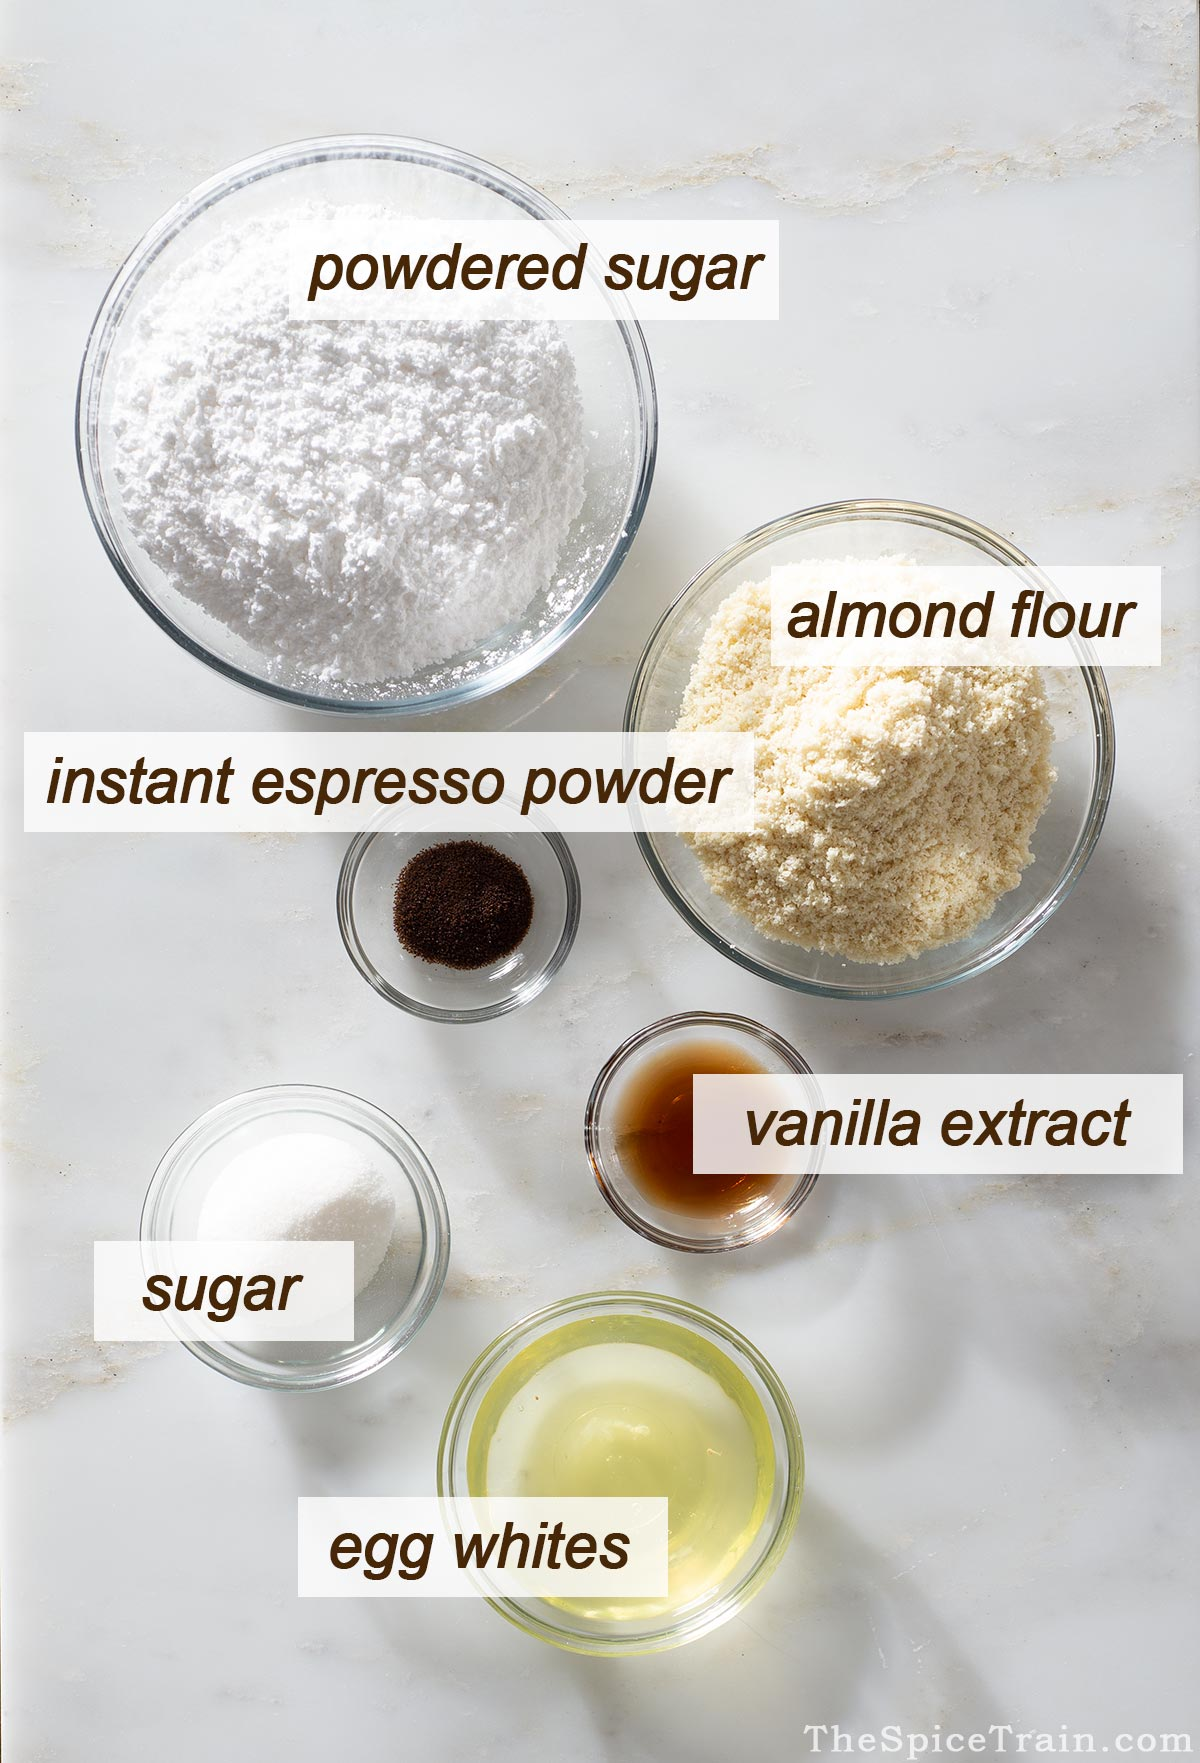 All ingredients needed to make coffee macarons.